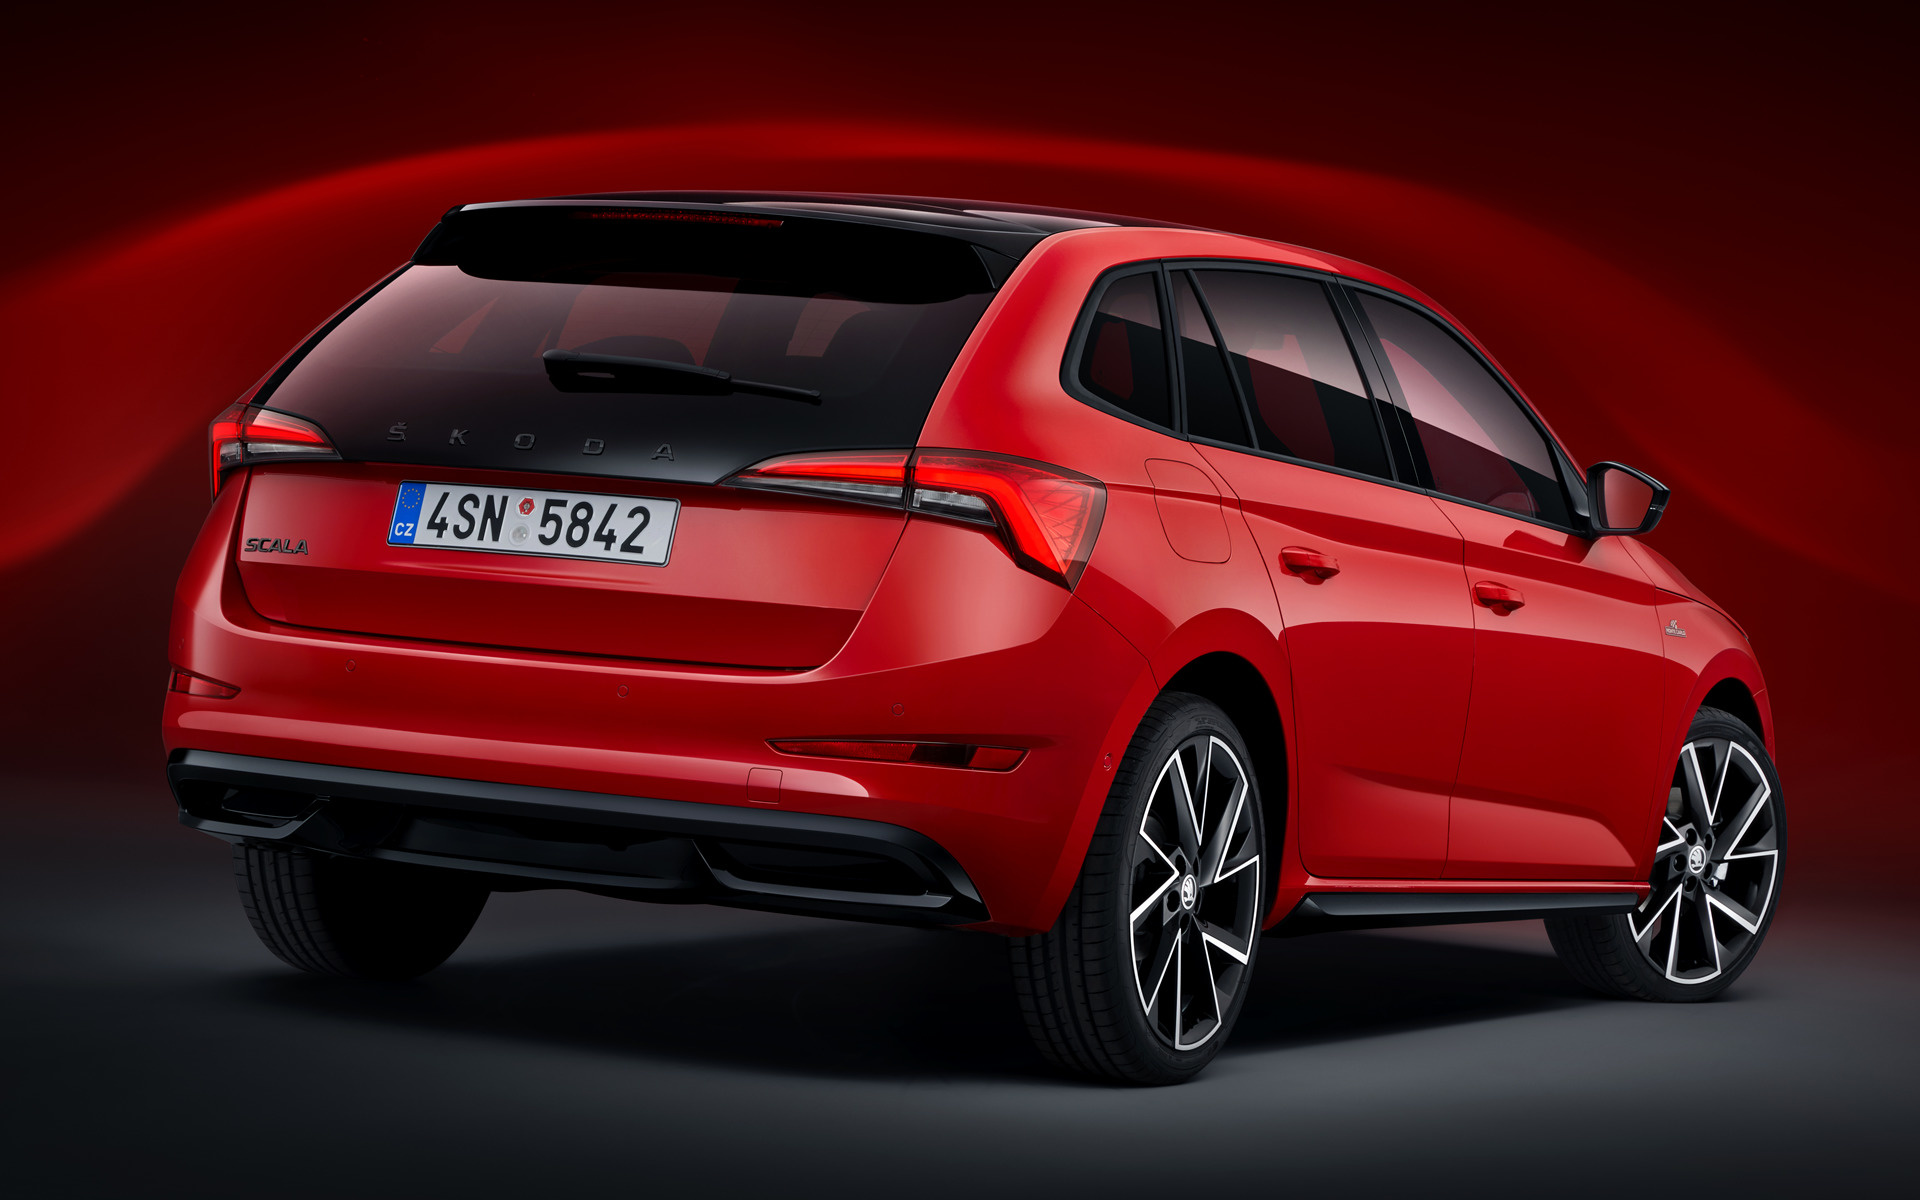 2019 Skoda Scala Monte Carlo - Wallpapers and HD Images | Car Pixel